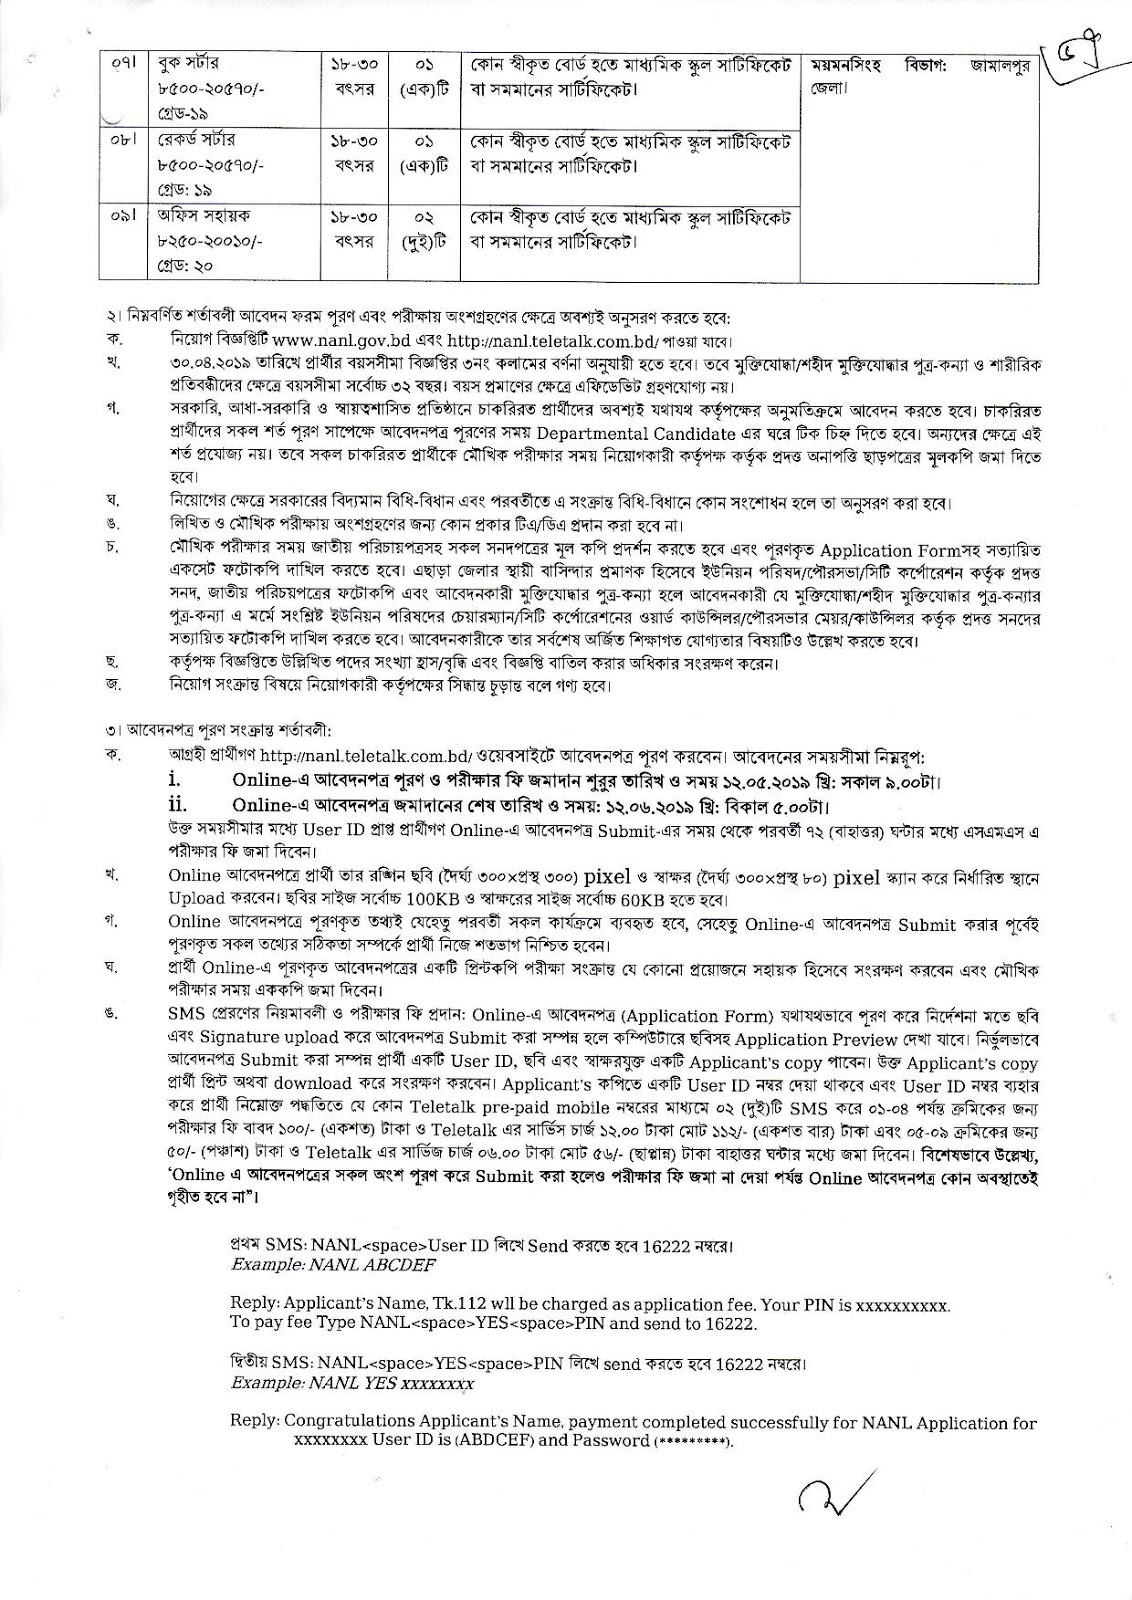 archives and library department Published New job circular